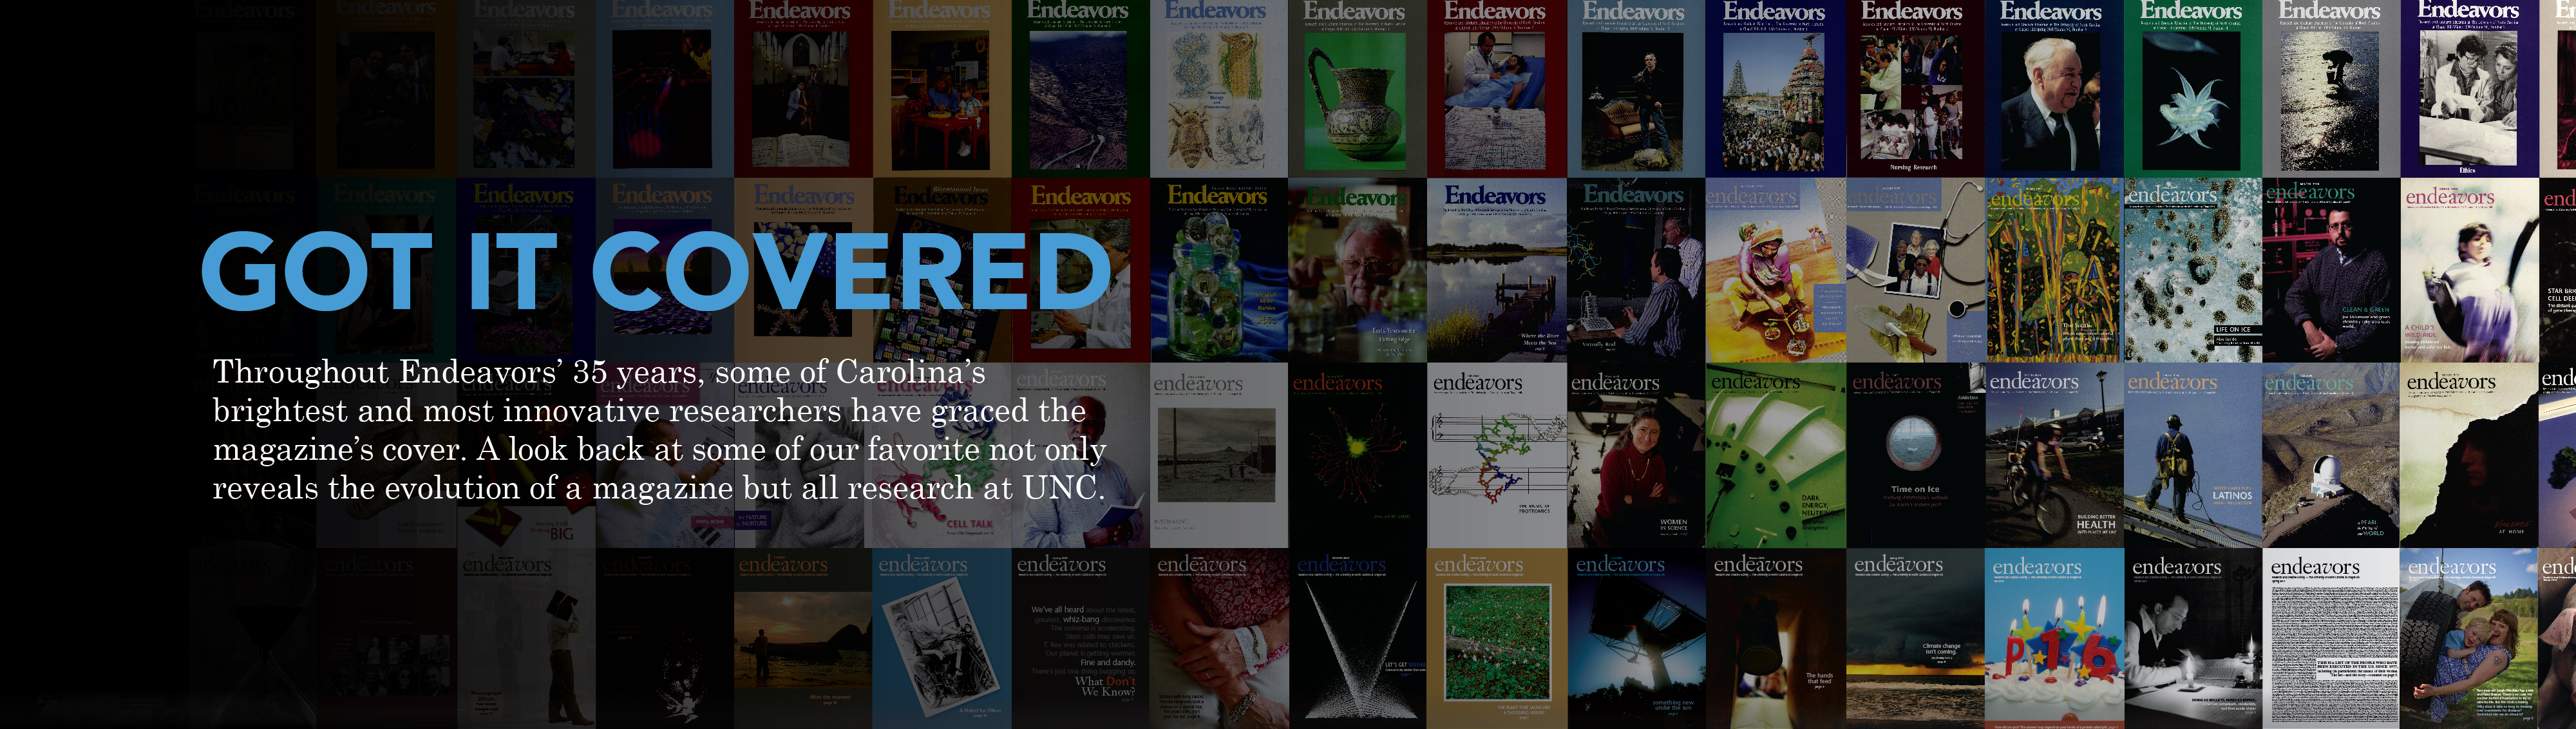 "Banner for ""Got it Covered: Throughout Endeavors' 35 years, some of Carolina'sbrightest and most innovative researchers have graced the magazine's cover. A look back at some of our favorite not only reveals the evolution of a magazine but all research at UNC."" Click to read the story."